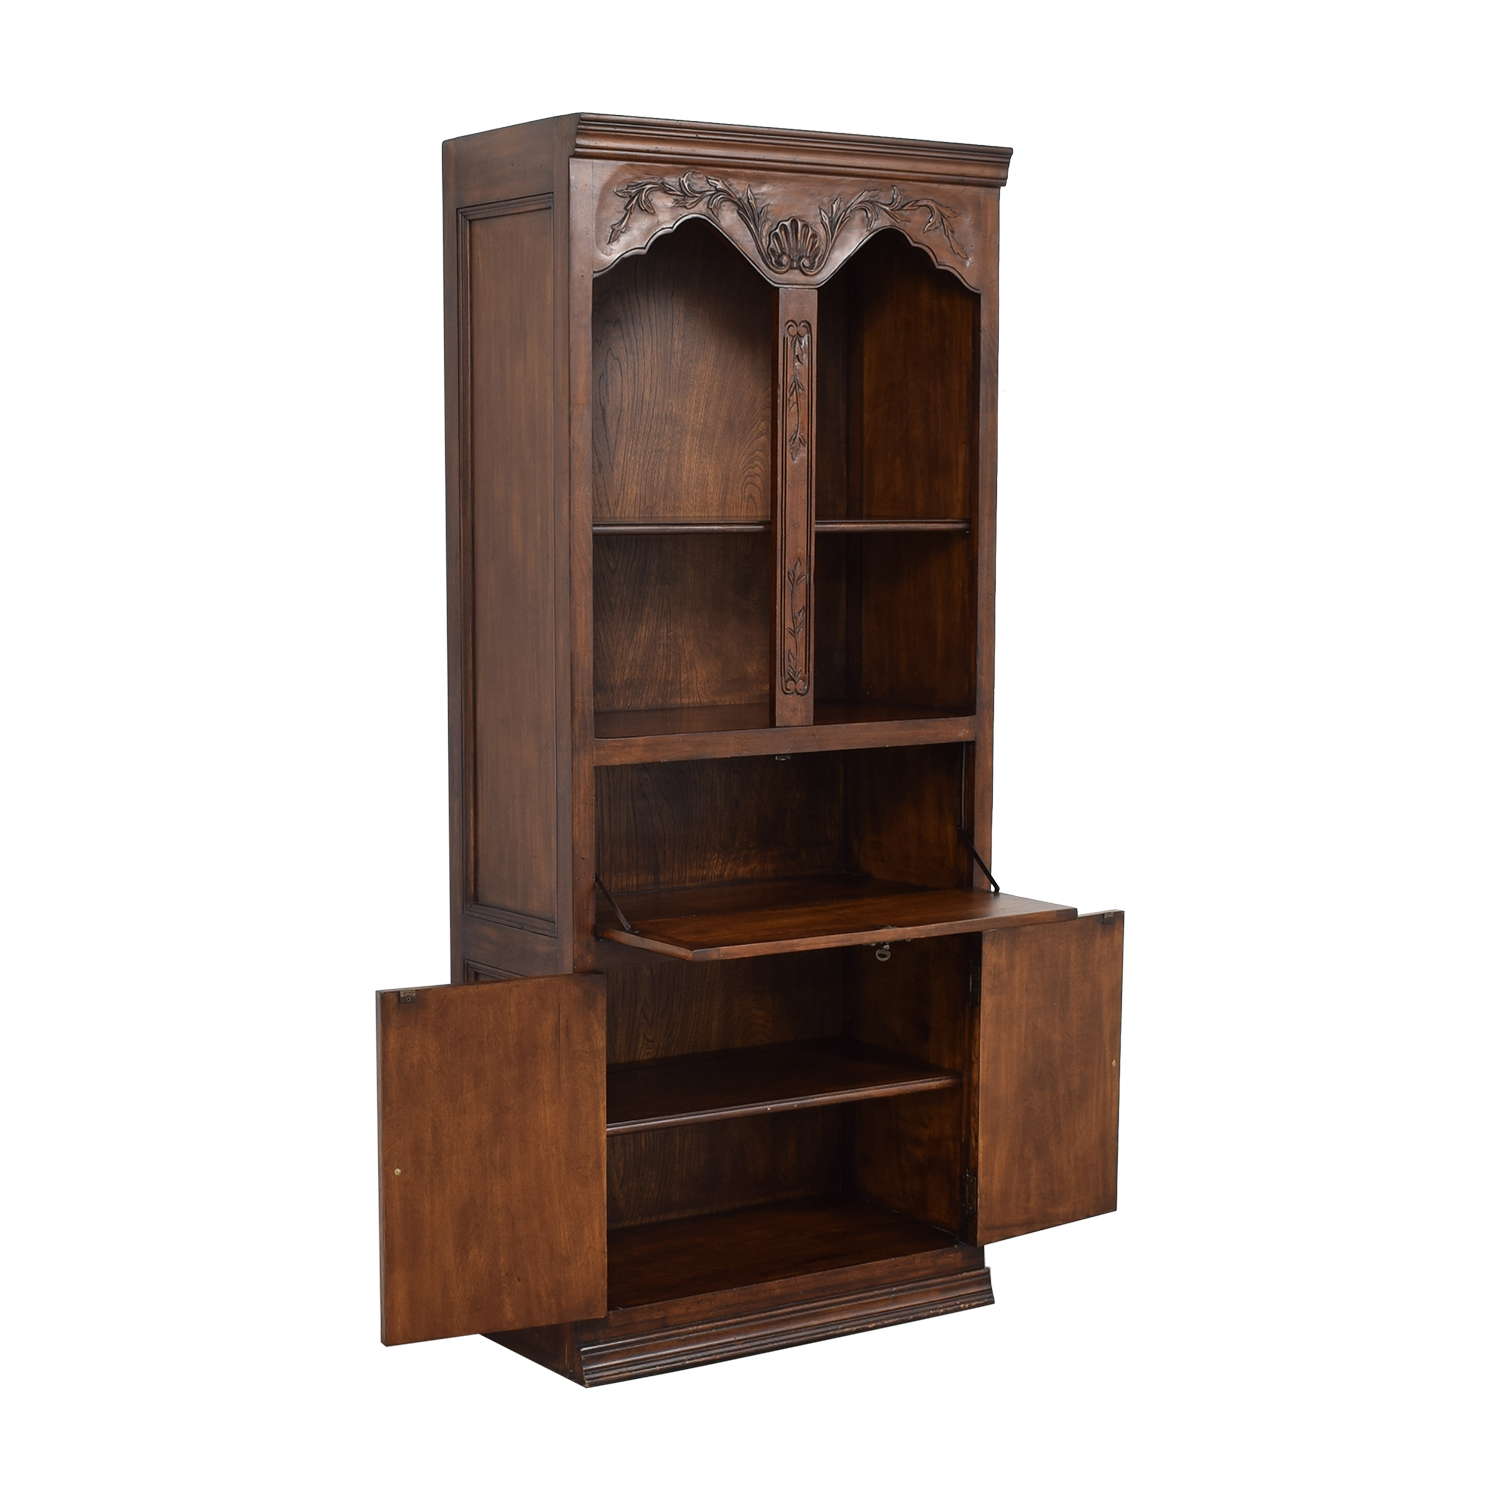 Bookcase with Cabinets dark brown